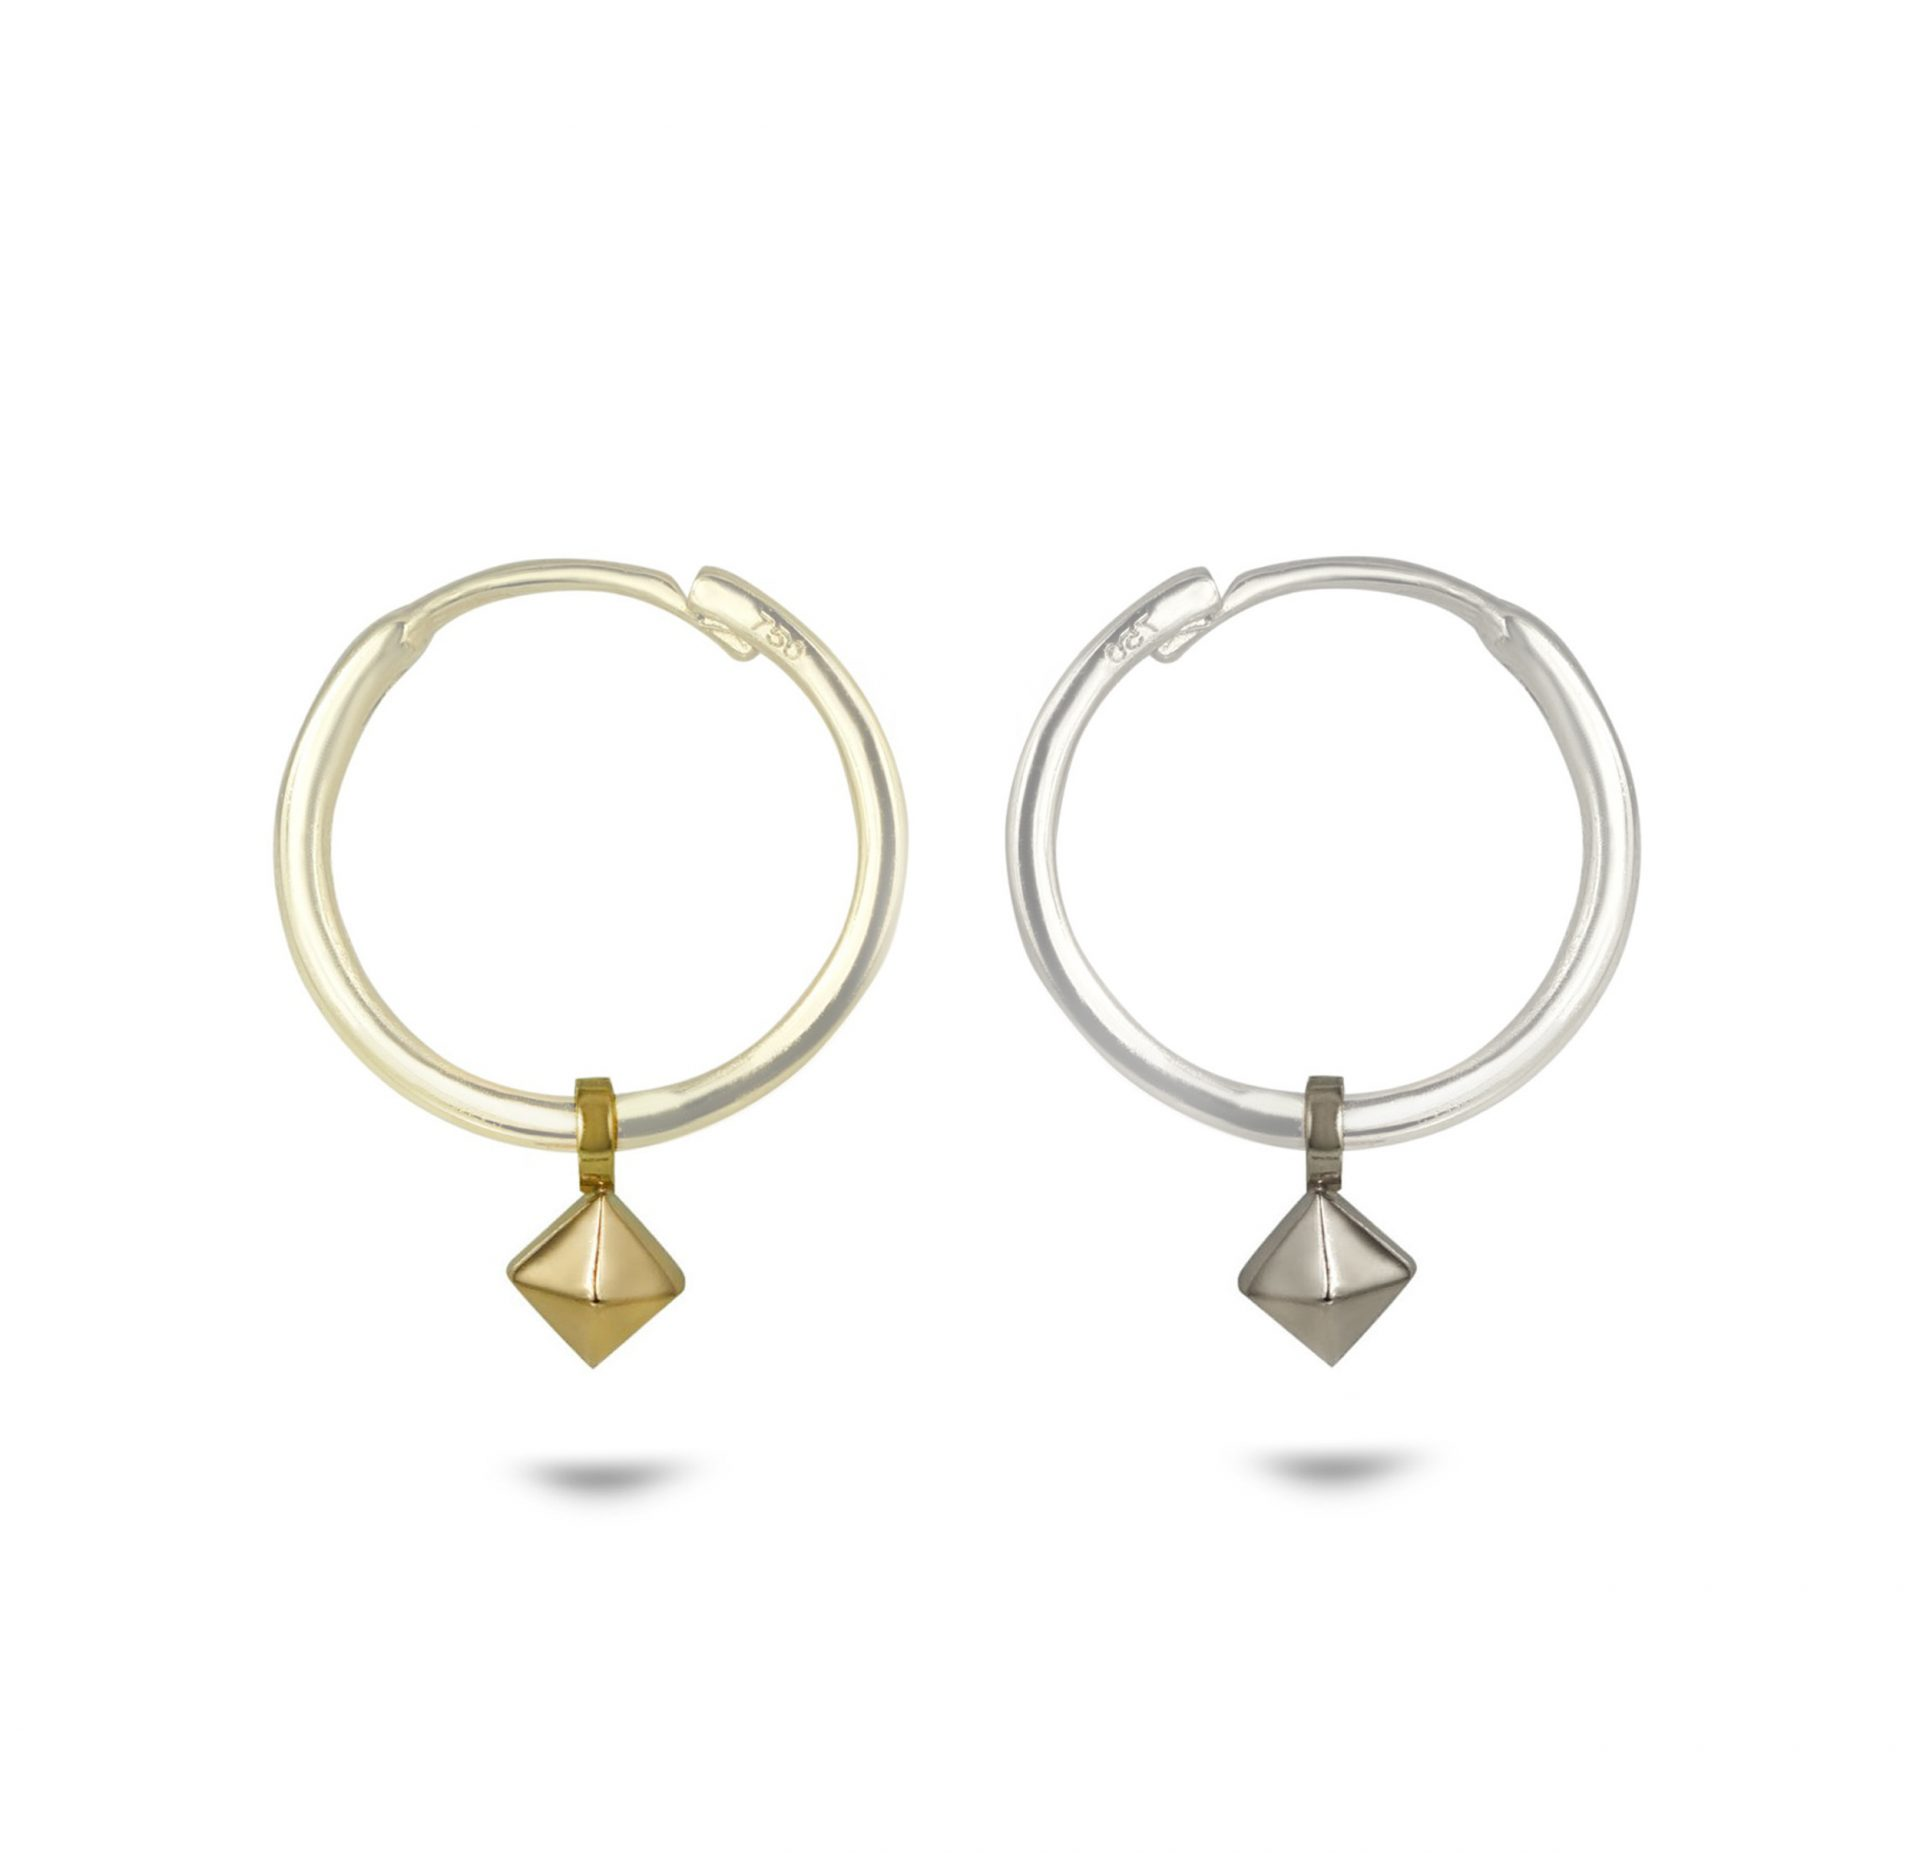 18k-gold-pyramid-charm-for-huggies-hoops-helix-piercing-lena-cohen-london-luxury-piercing-jewellery